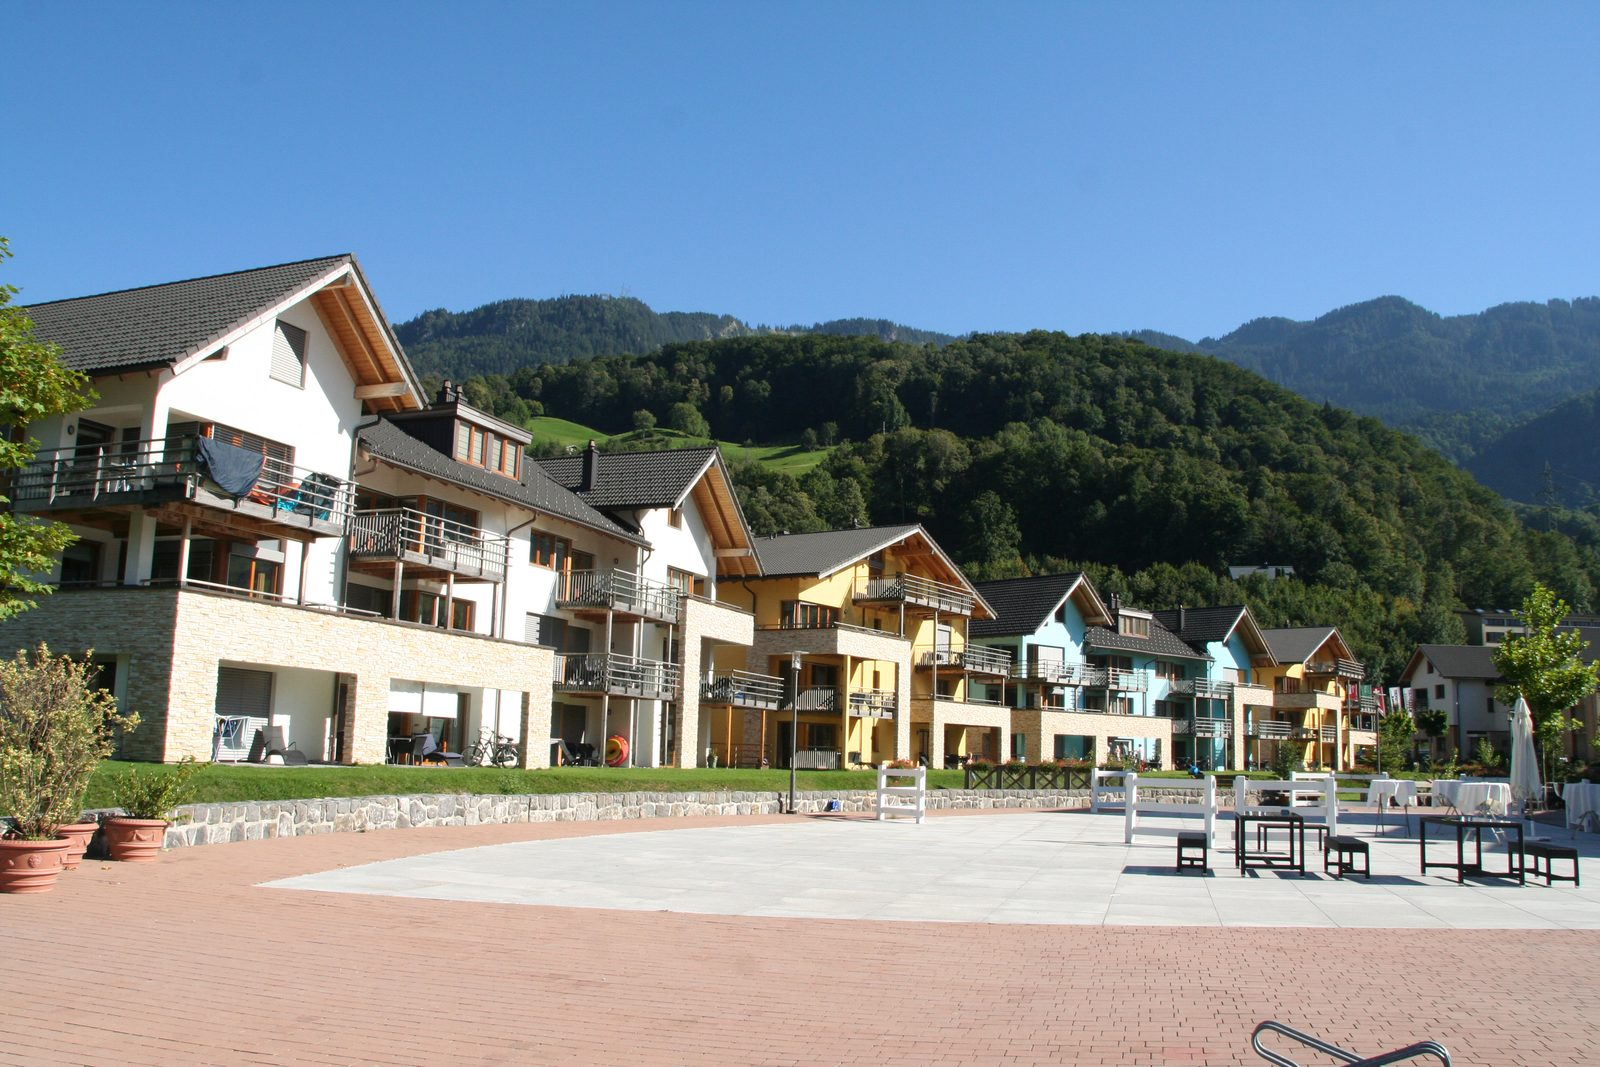 Apartments at the village square of Resort Walensee in Heidiland Flumserberg Switzerland during spring break